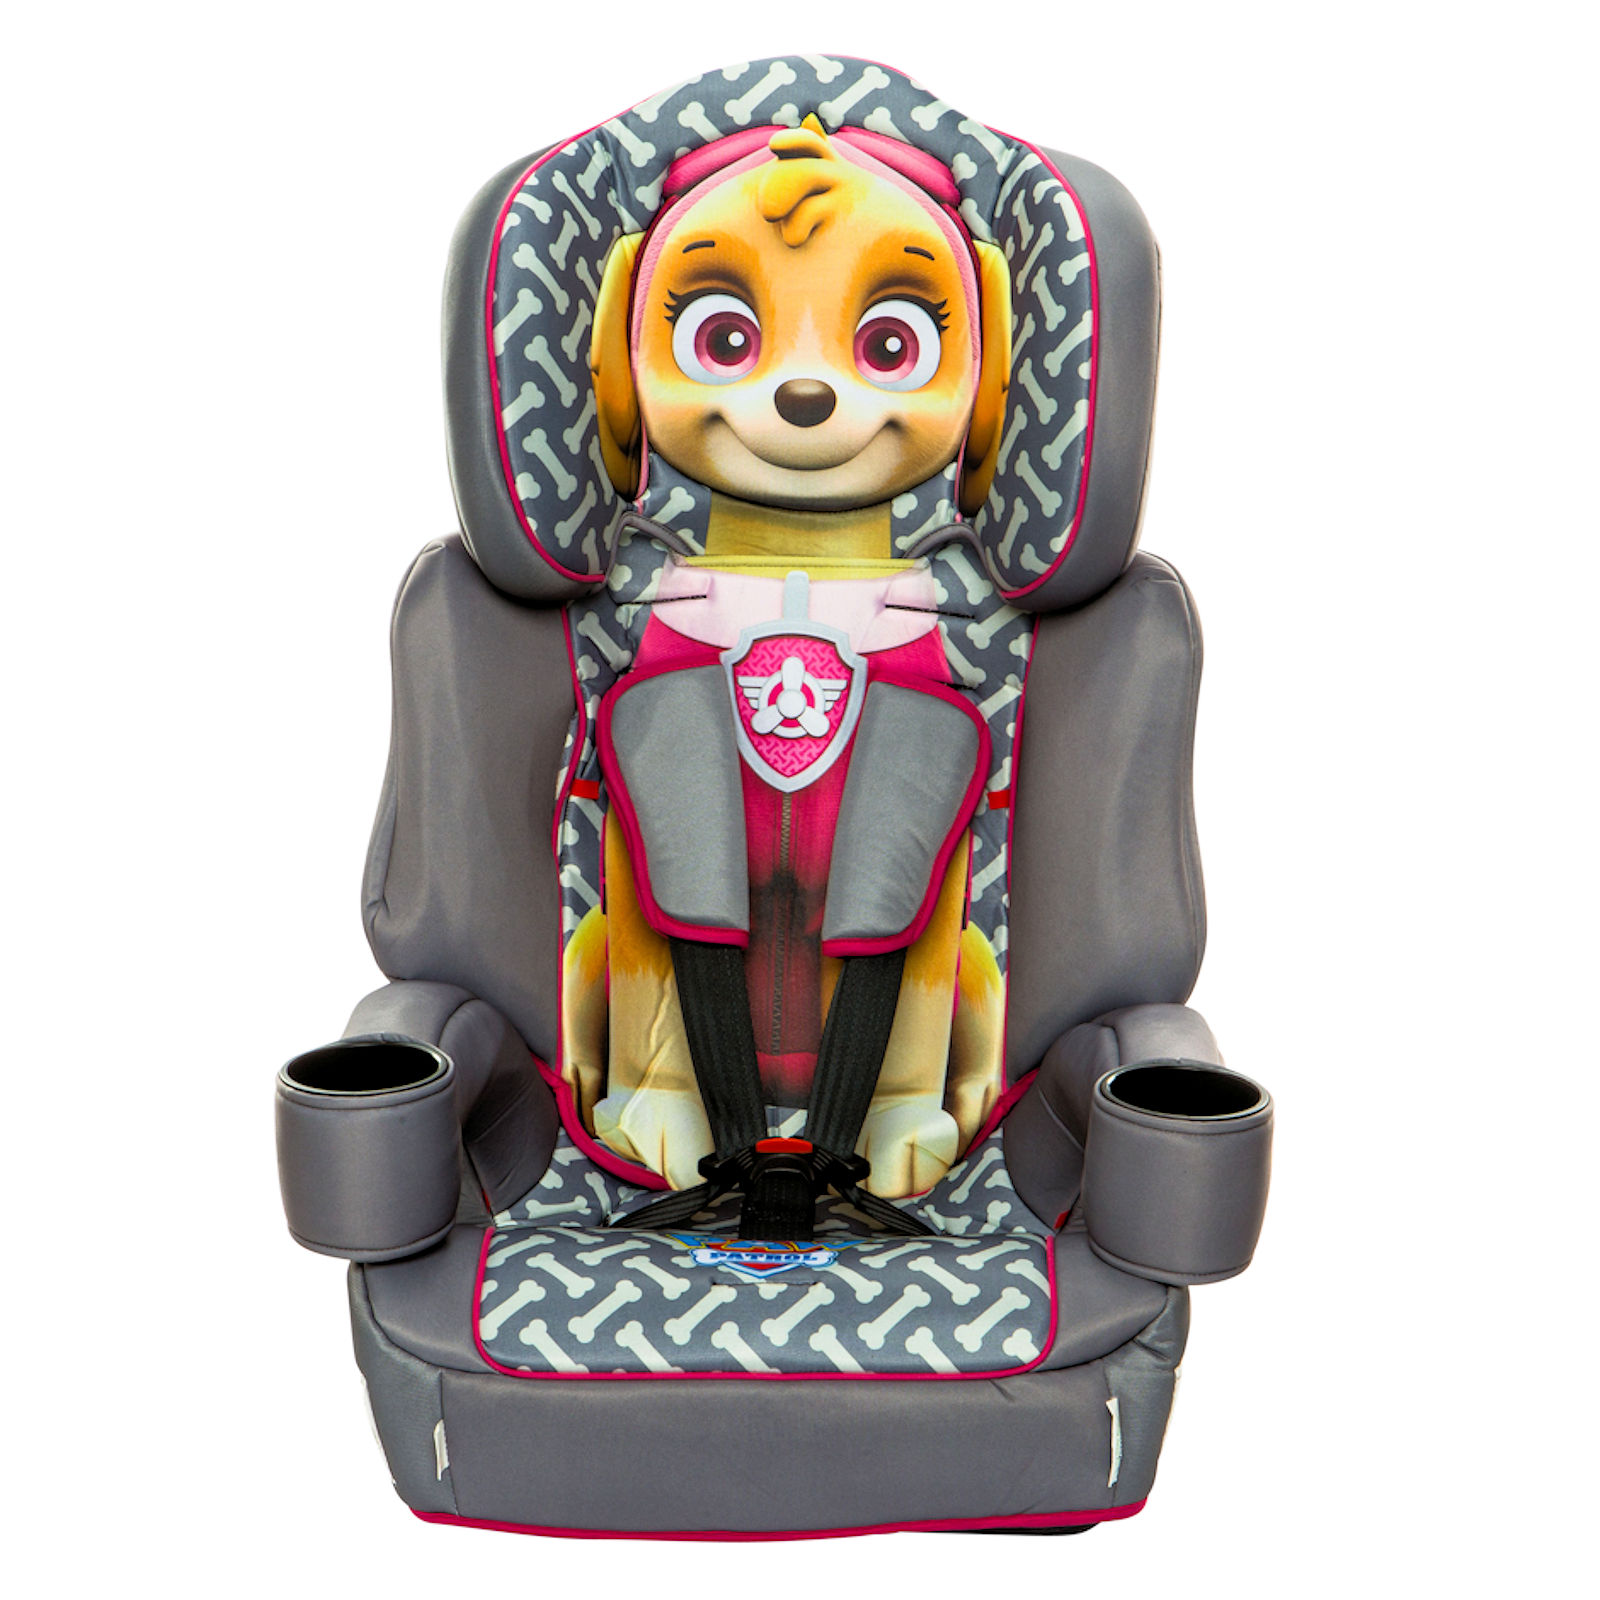 Kids Embrace Group 123 Booster Car Seat